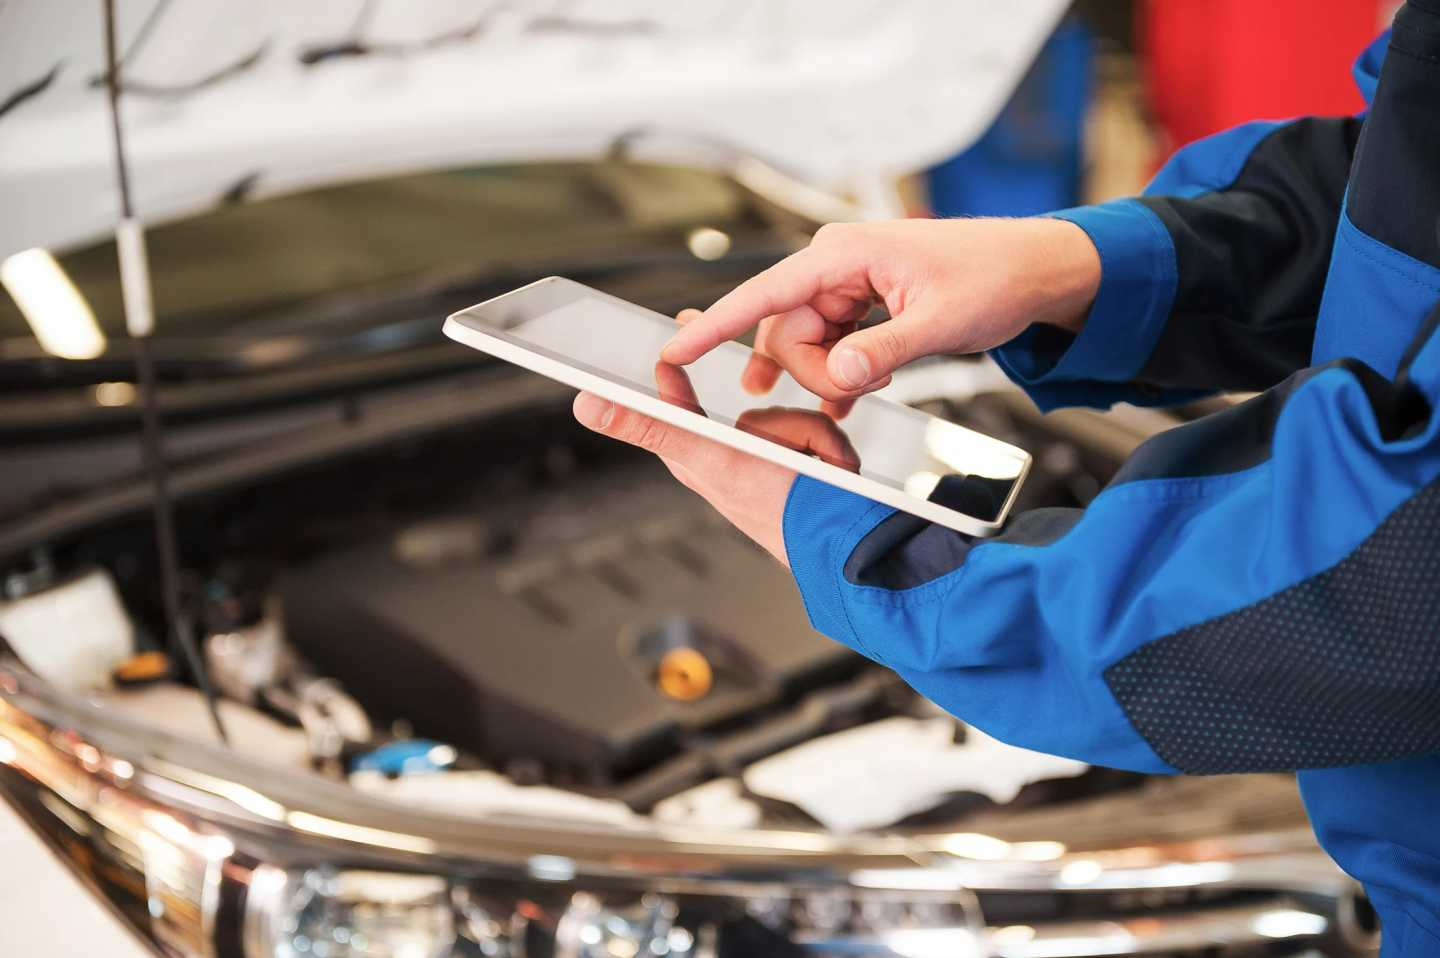 How a mechanic learned to create mobile apps